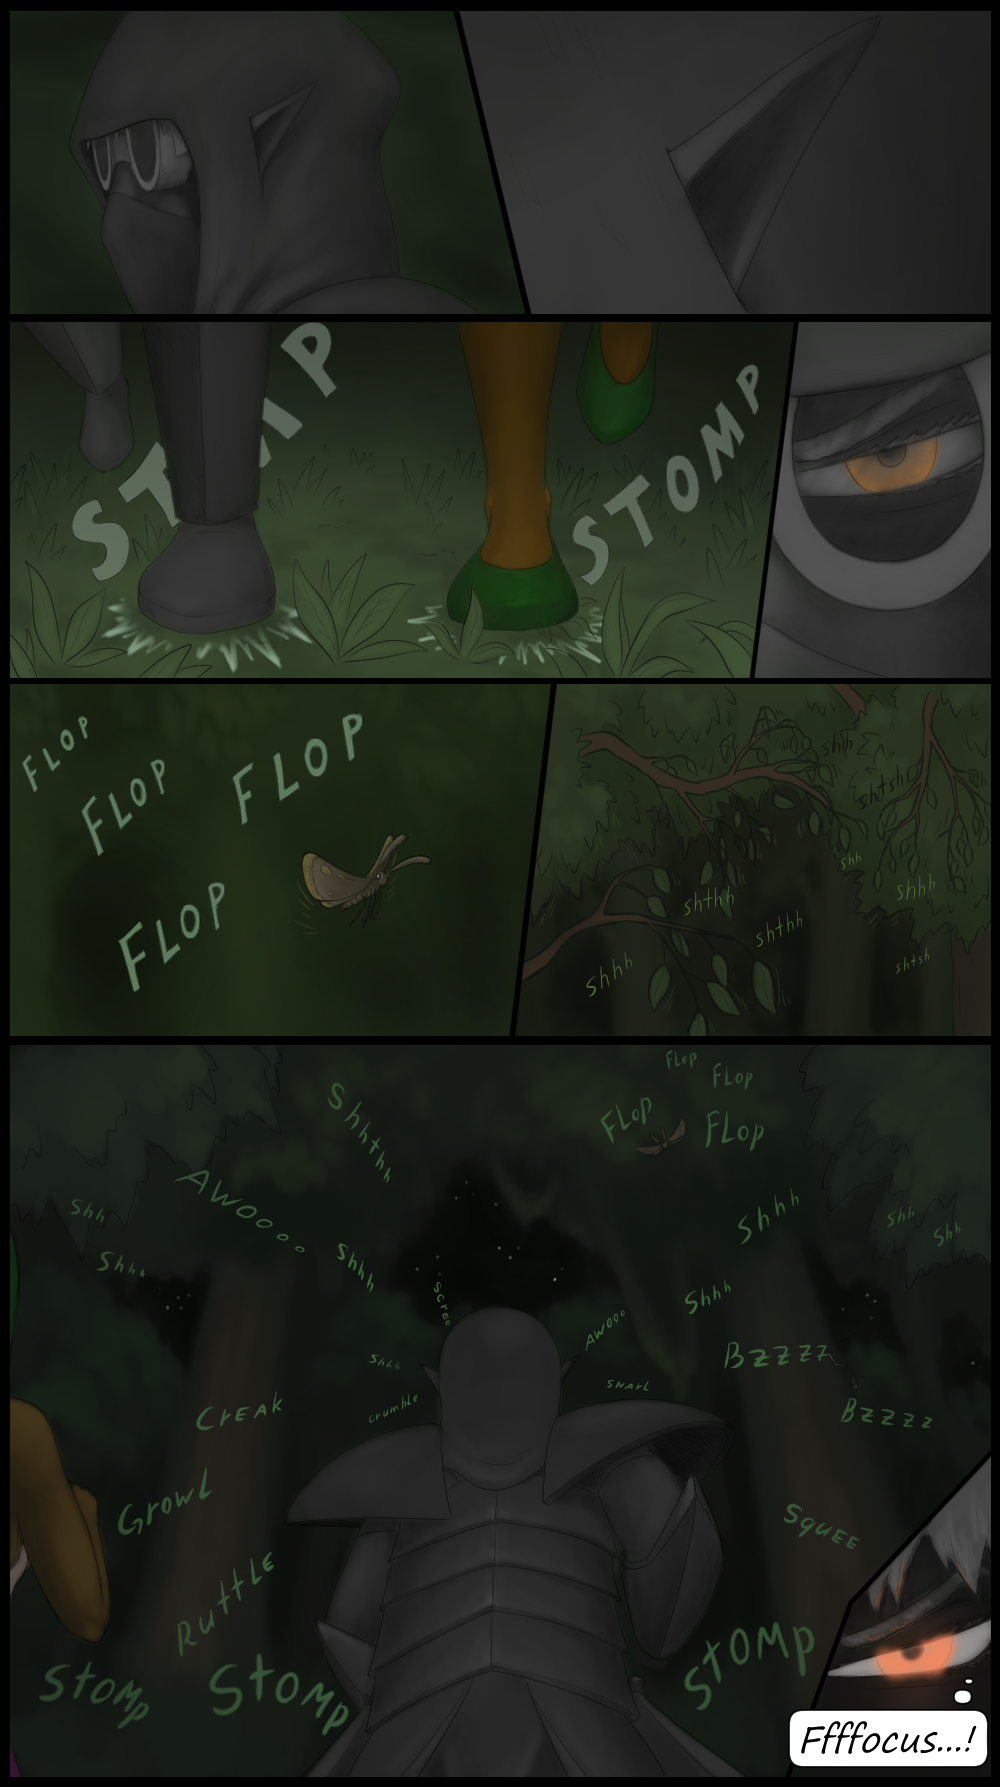 Page 32 - Sounds of nature